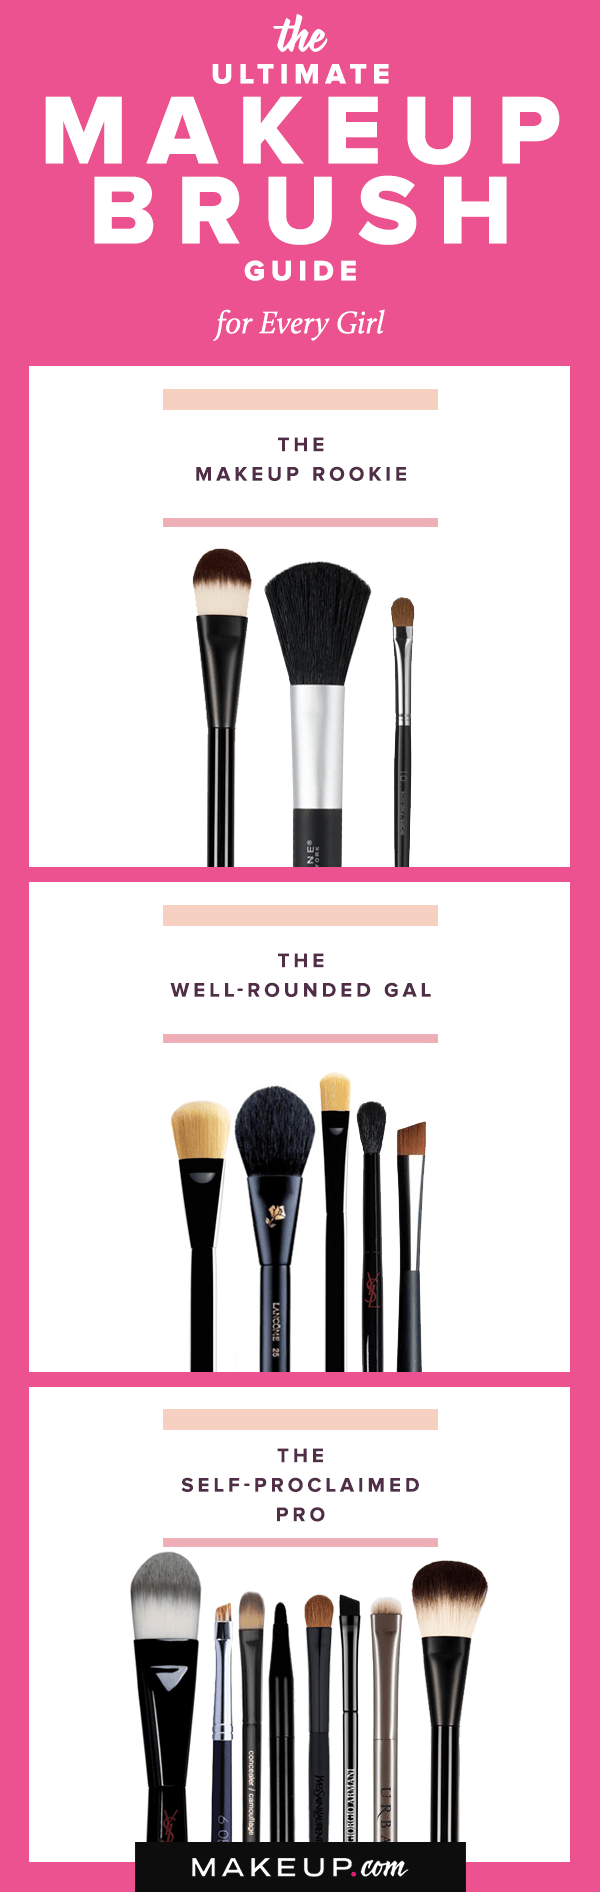 Photo of Makeup Brush Guide for Beginners and Professional Artists | Makeup.com